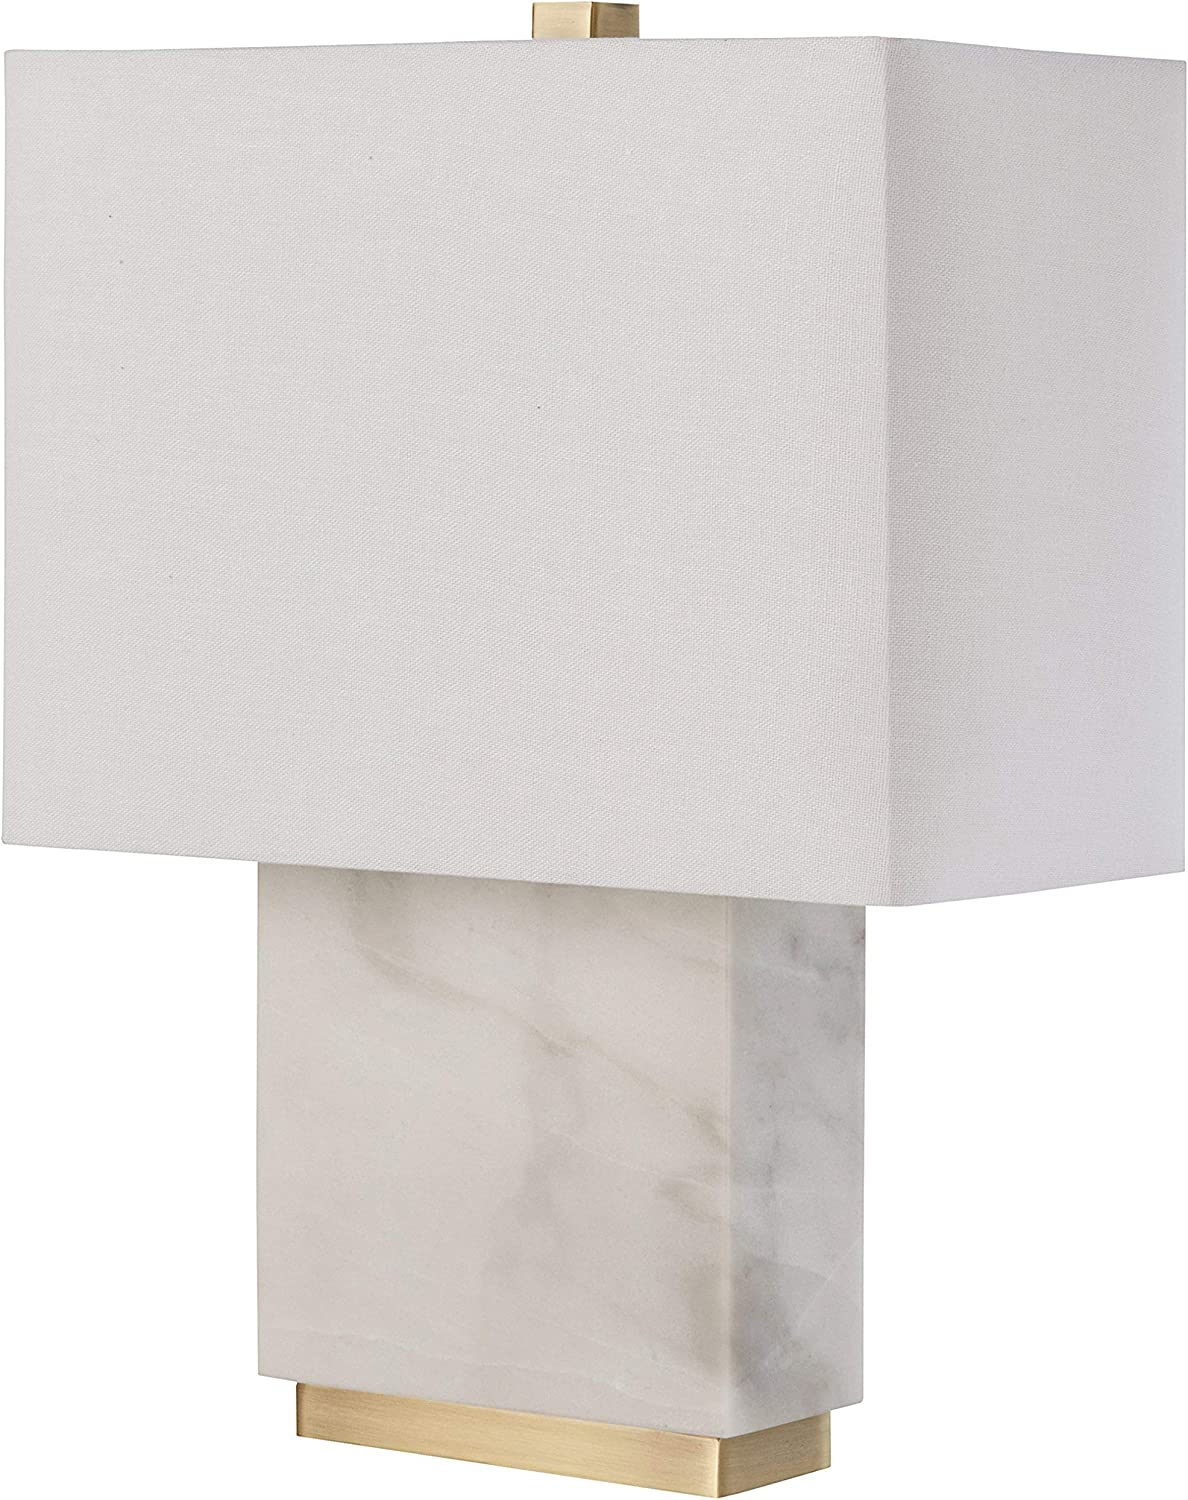 Rivet Mid-Century Marble and Brass Table Lamp, With Bulb, 17  x 6.5  x 13.5